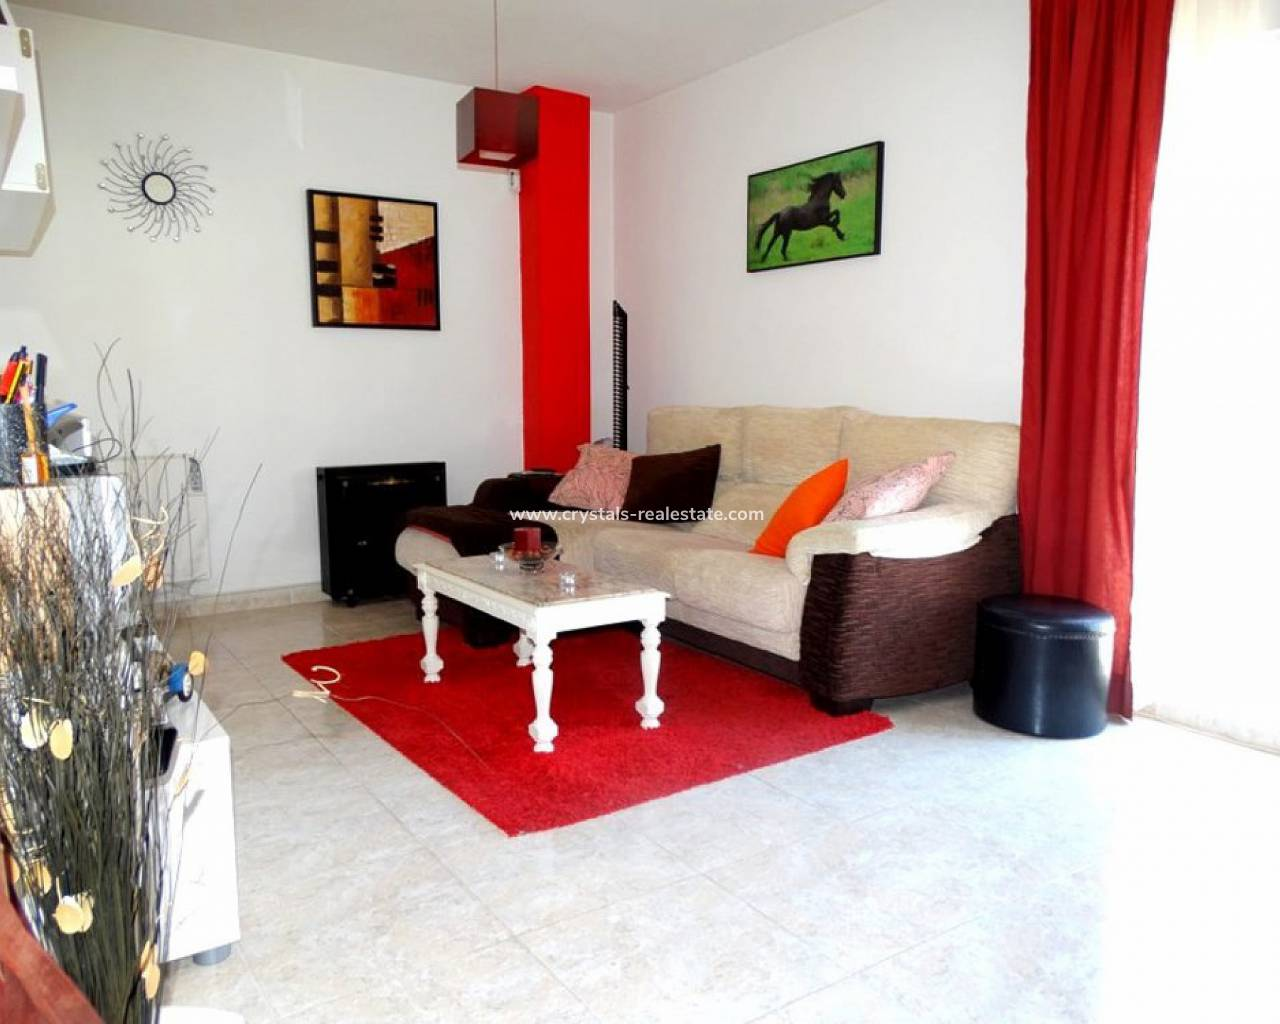 Resale - Appartement - Pilar de la Horadada